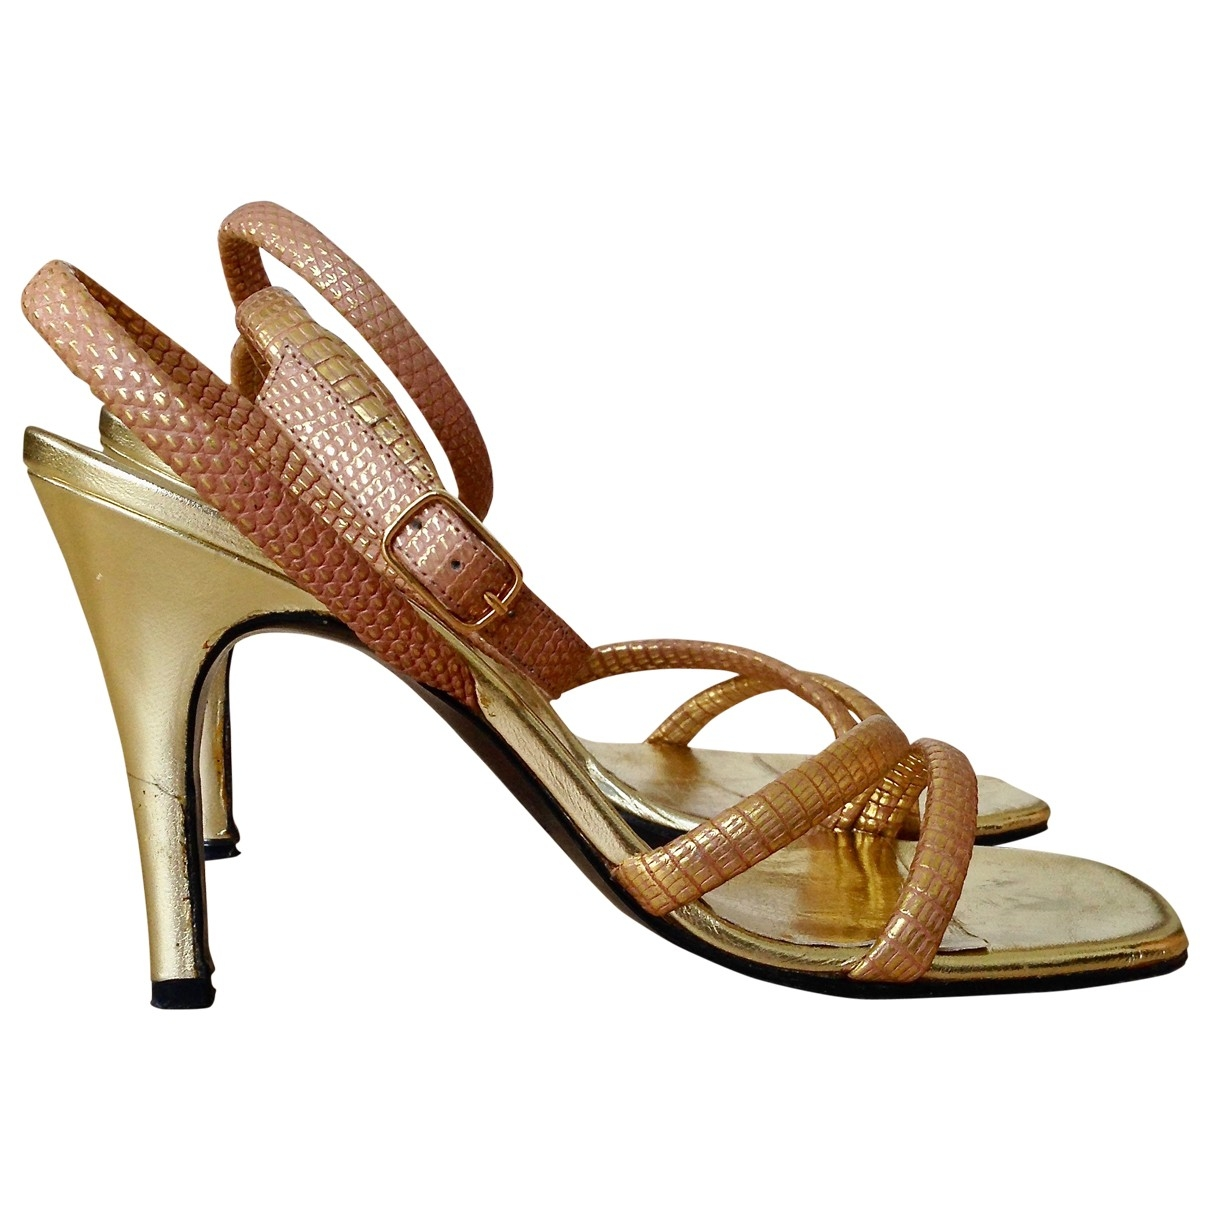 Yves Saint Laurent \N Gold Leather Sandals for Women 37.5 EU